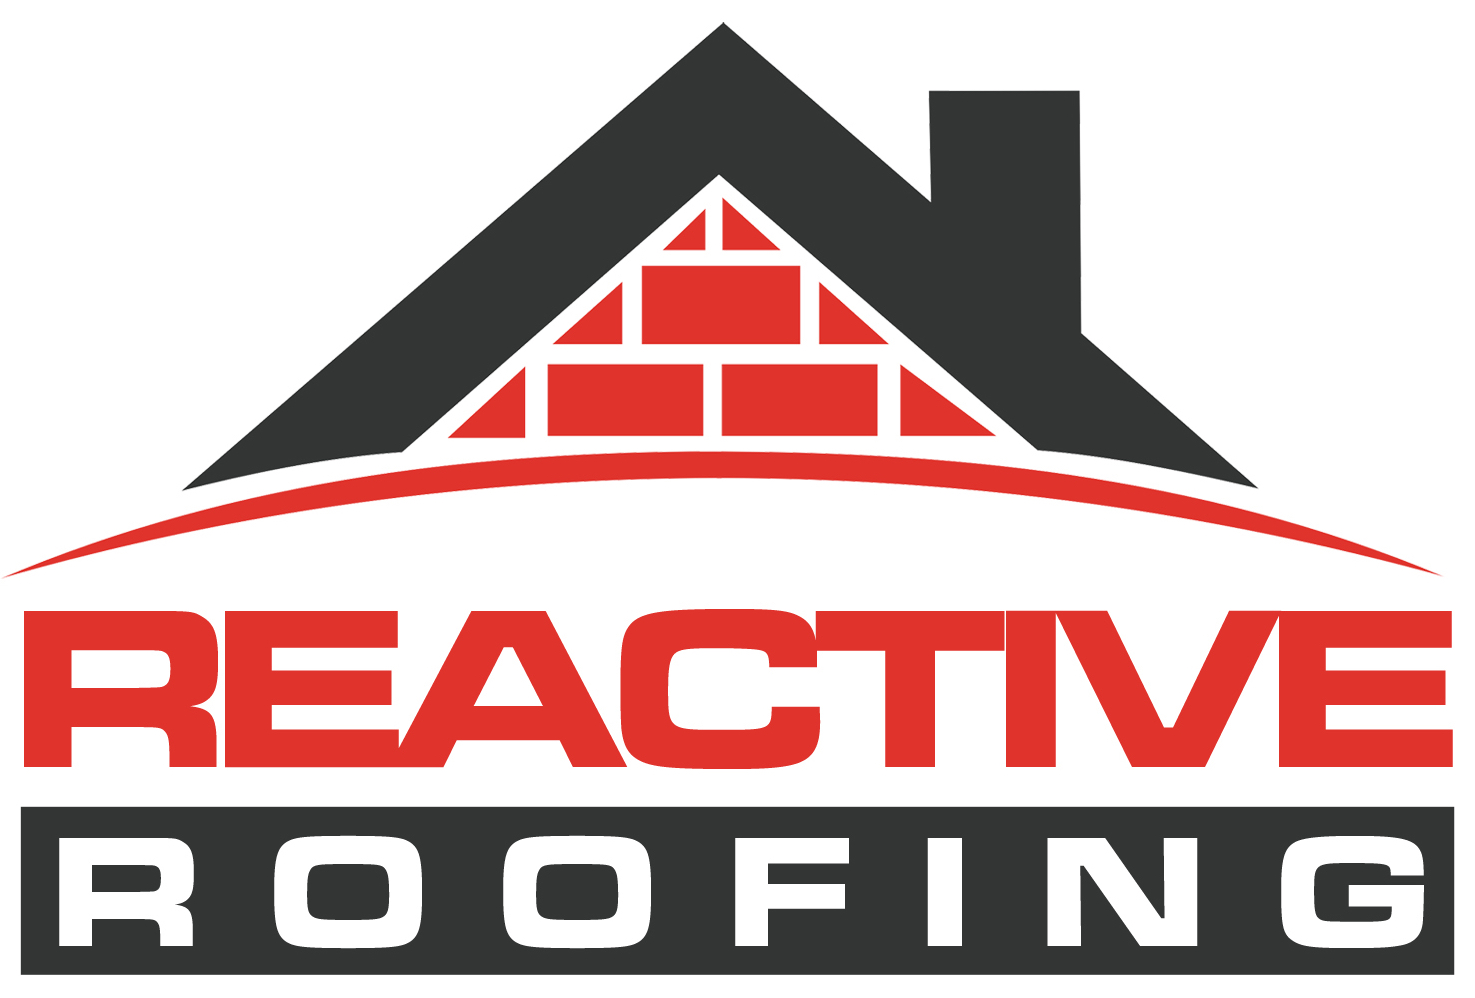 Reactive Roofing Services